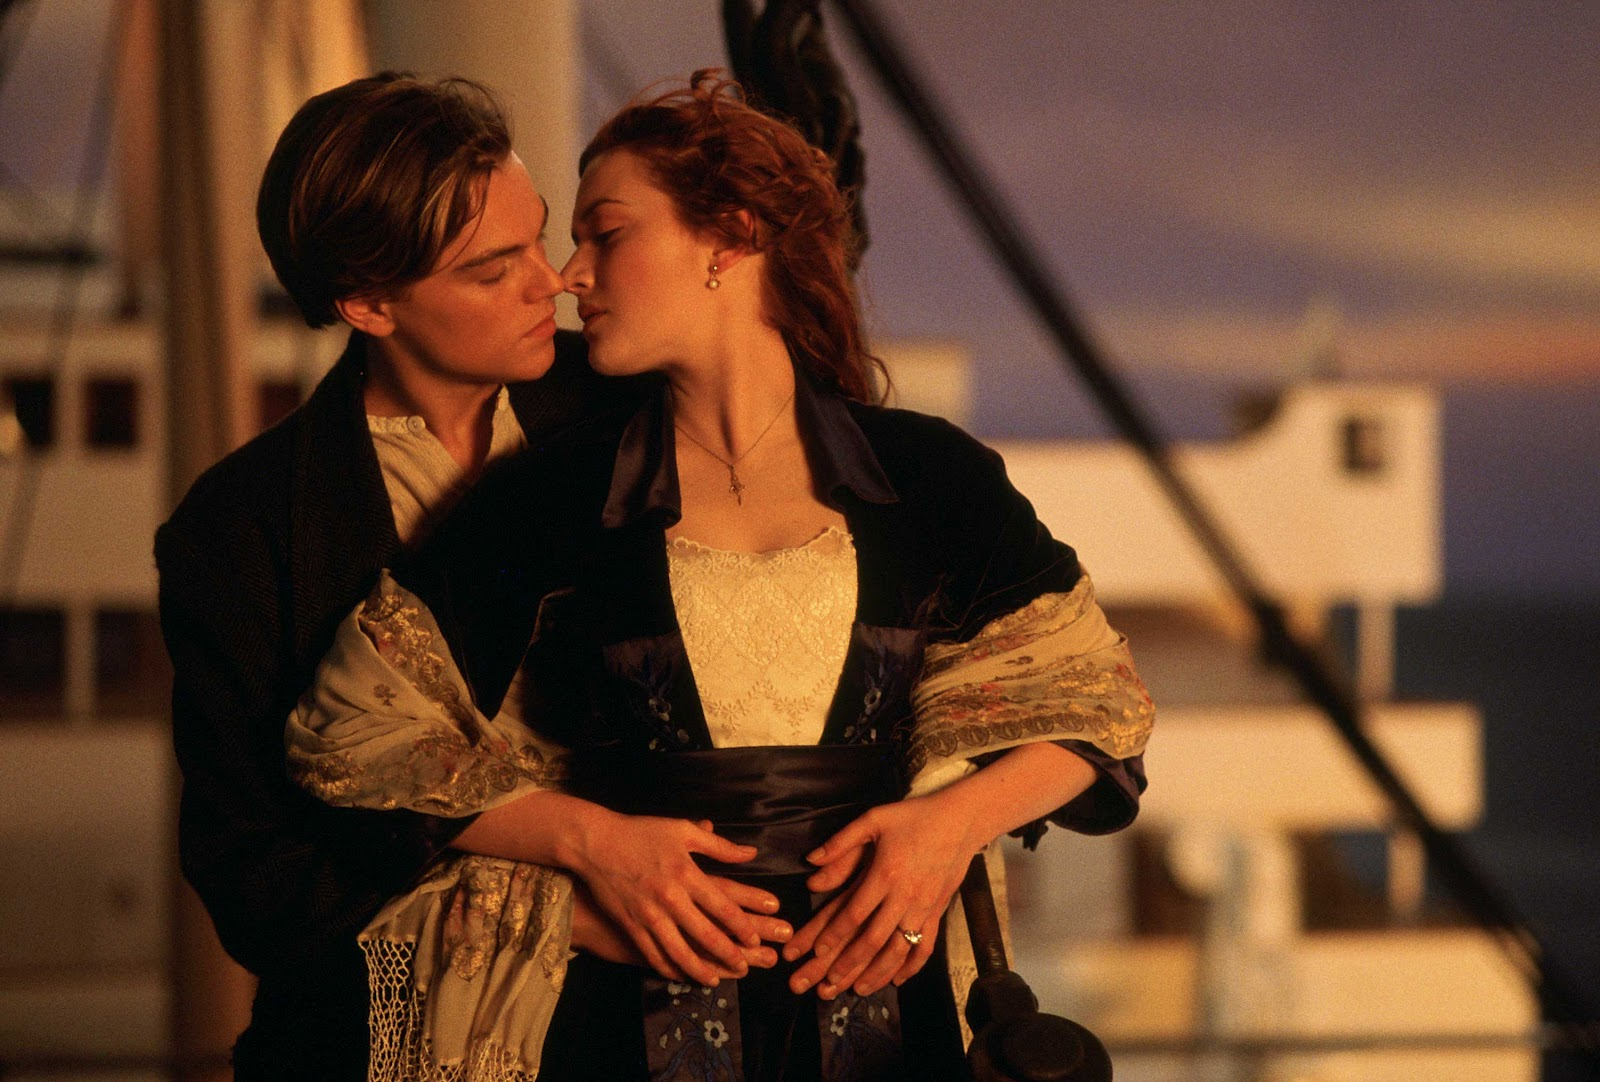 Kate Winslet Titanic Painting Scene Jack and rose share their